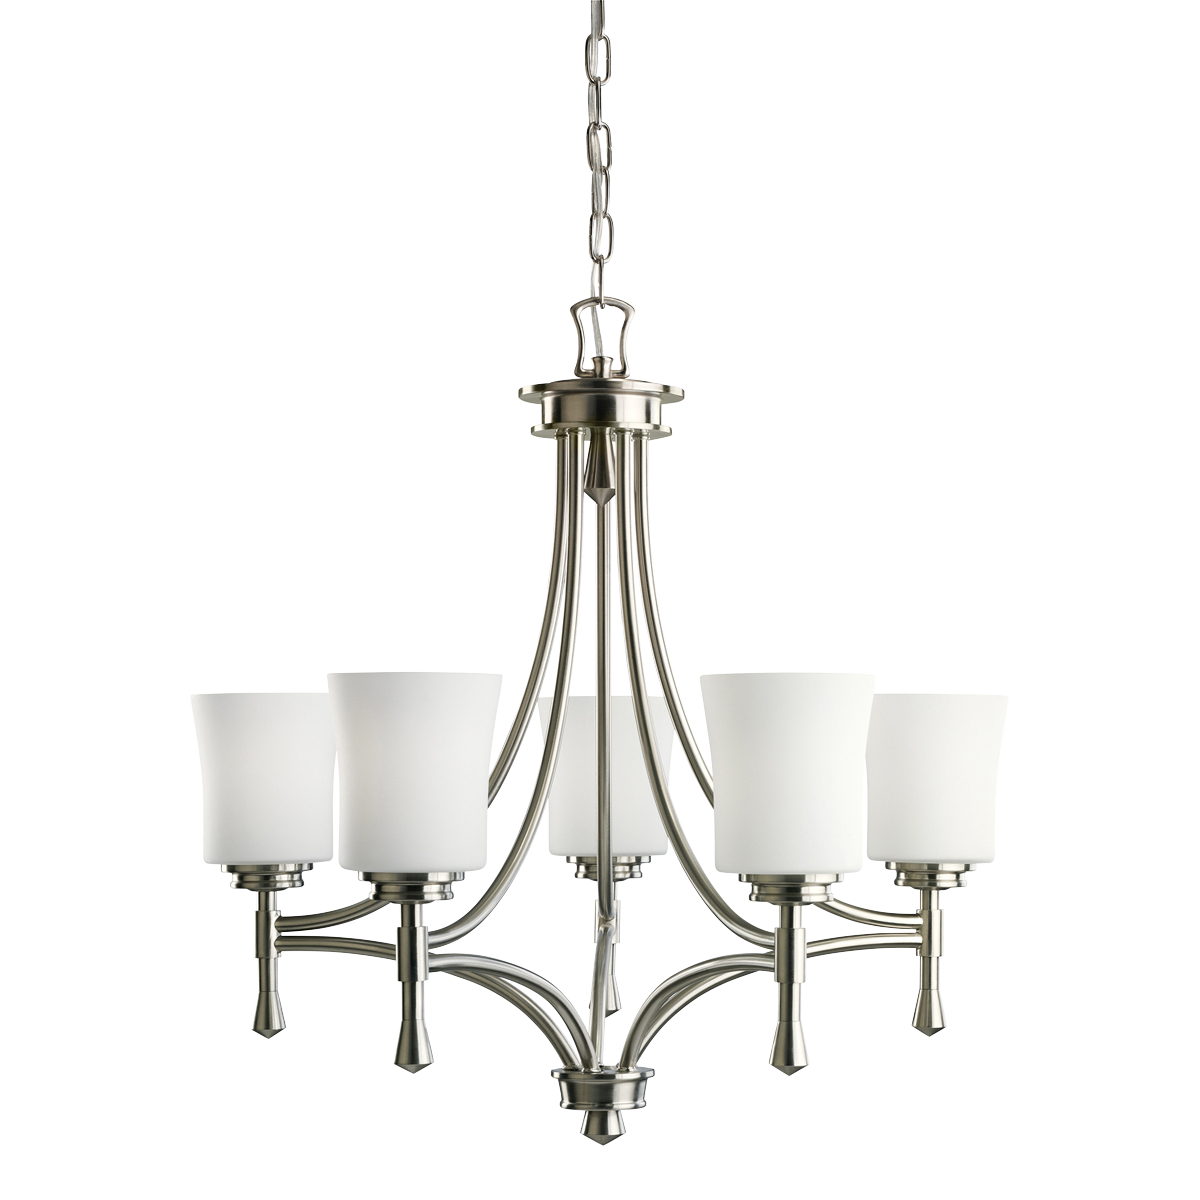 Brushed Nickel Dining Room Light Fixtures 5 Light Chandelier In Brushed Nickel  Wharton Collection